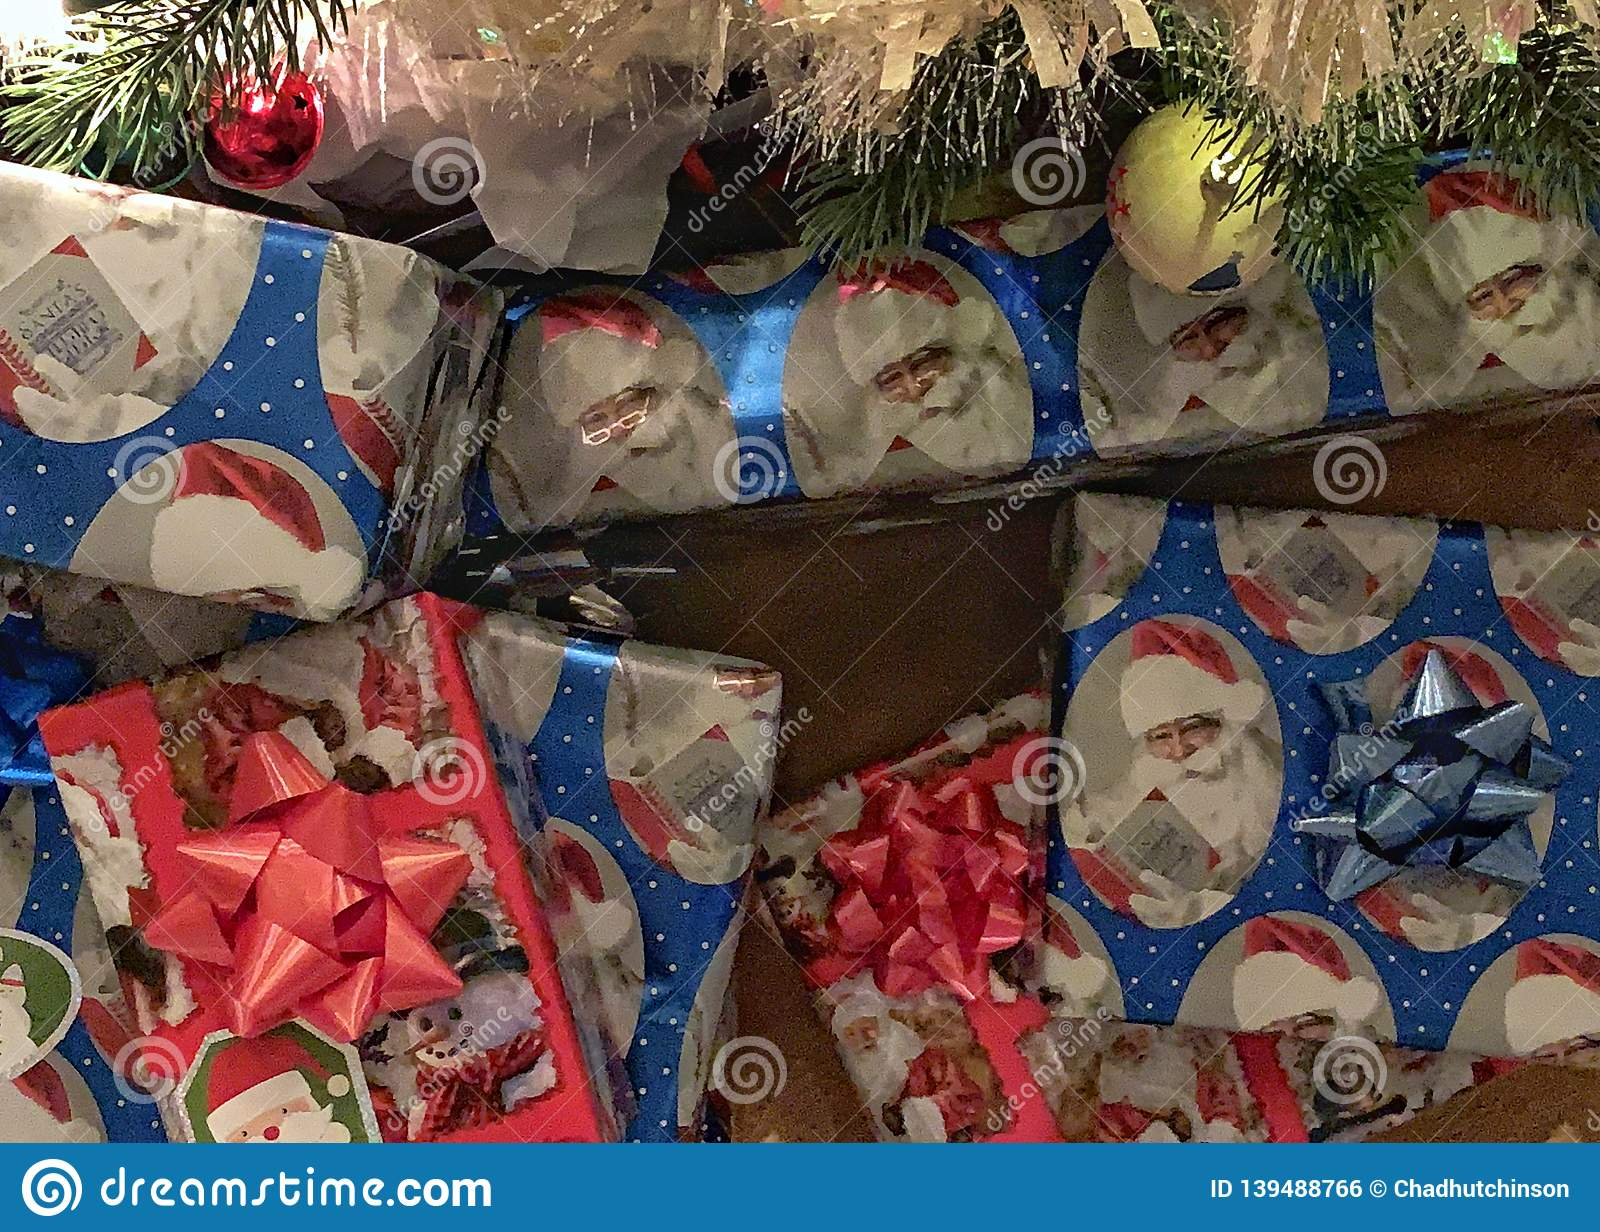 Wrapped Christmas Gifts Under The Tree Stock Photo Image Of Gift Wrap 139488766